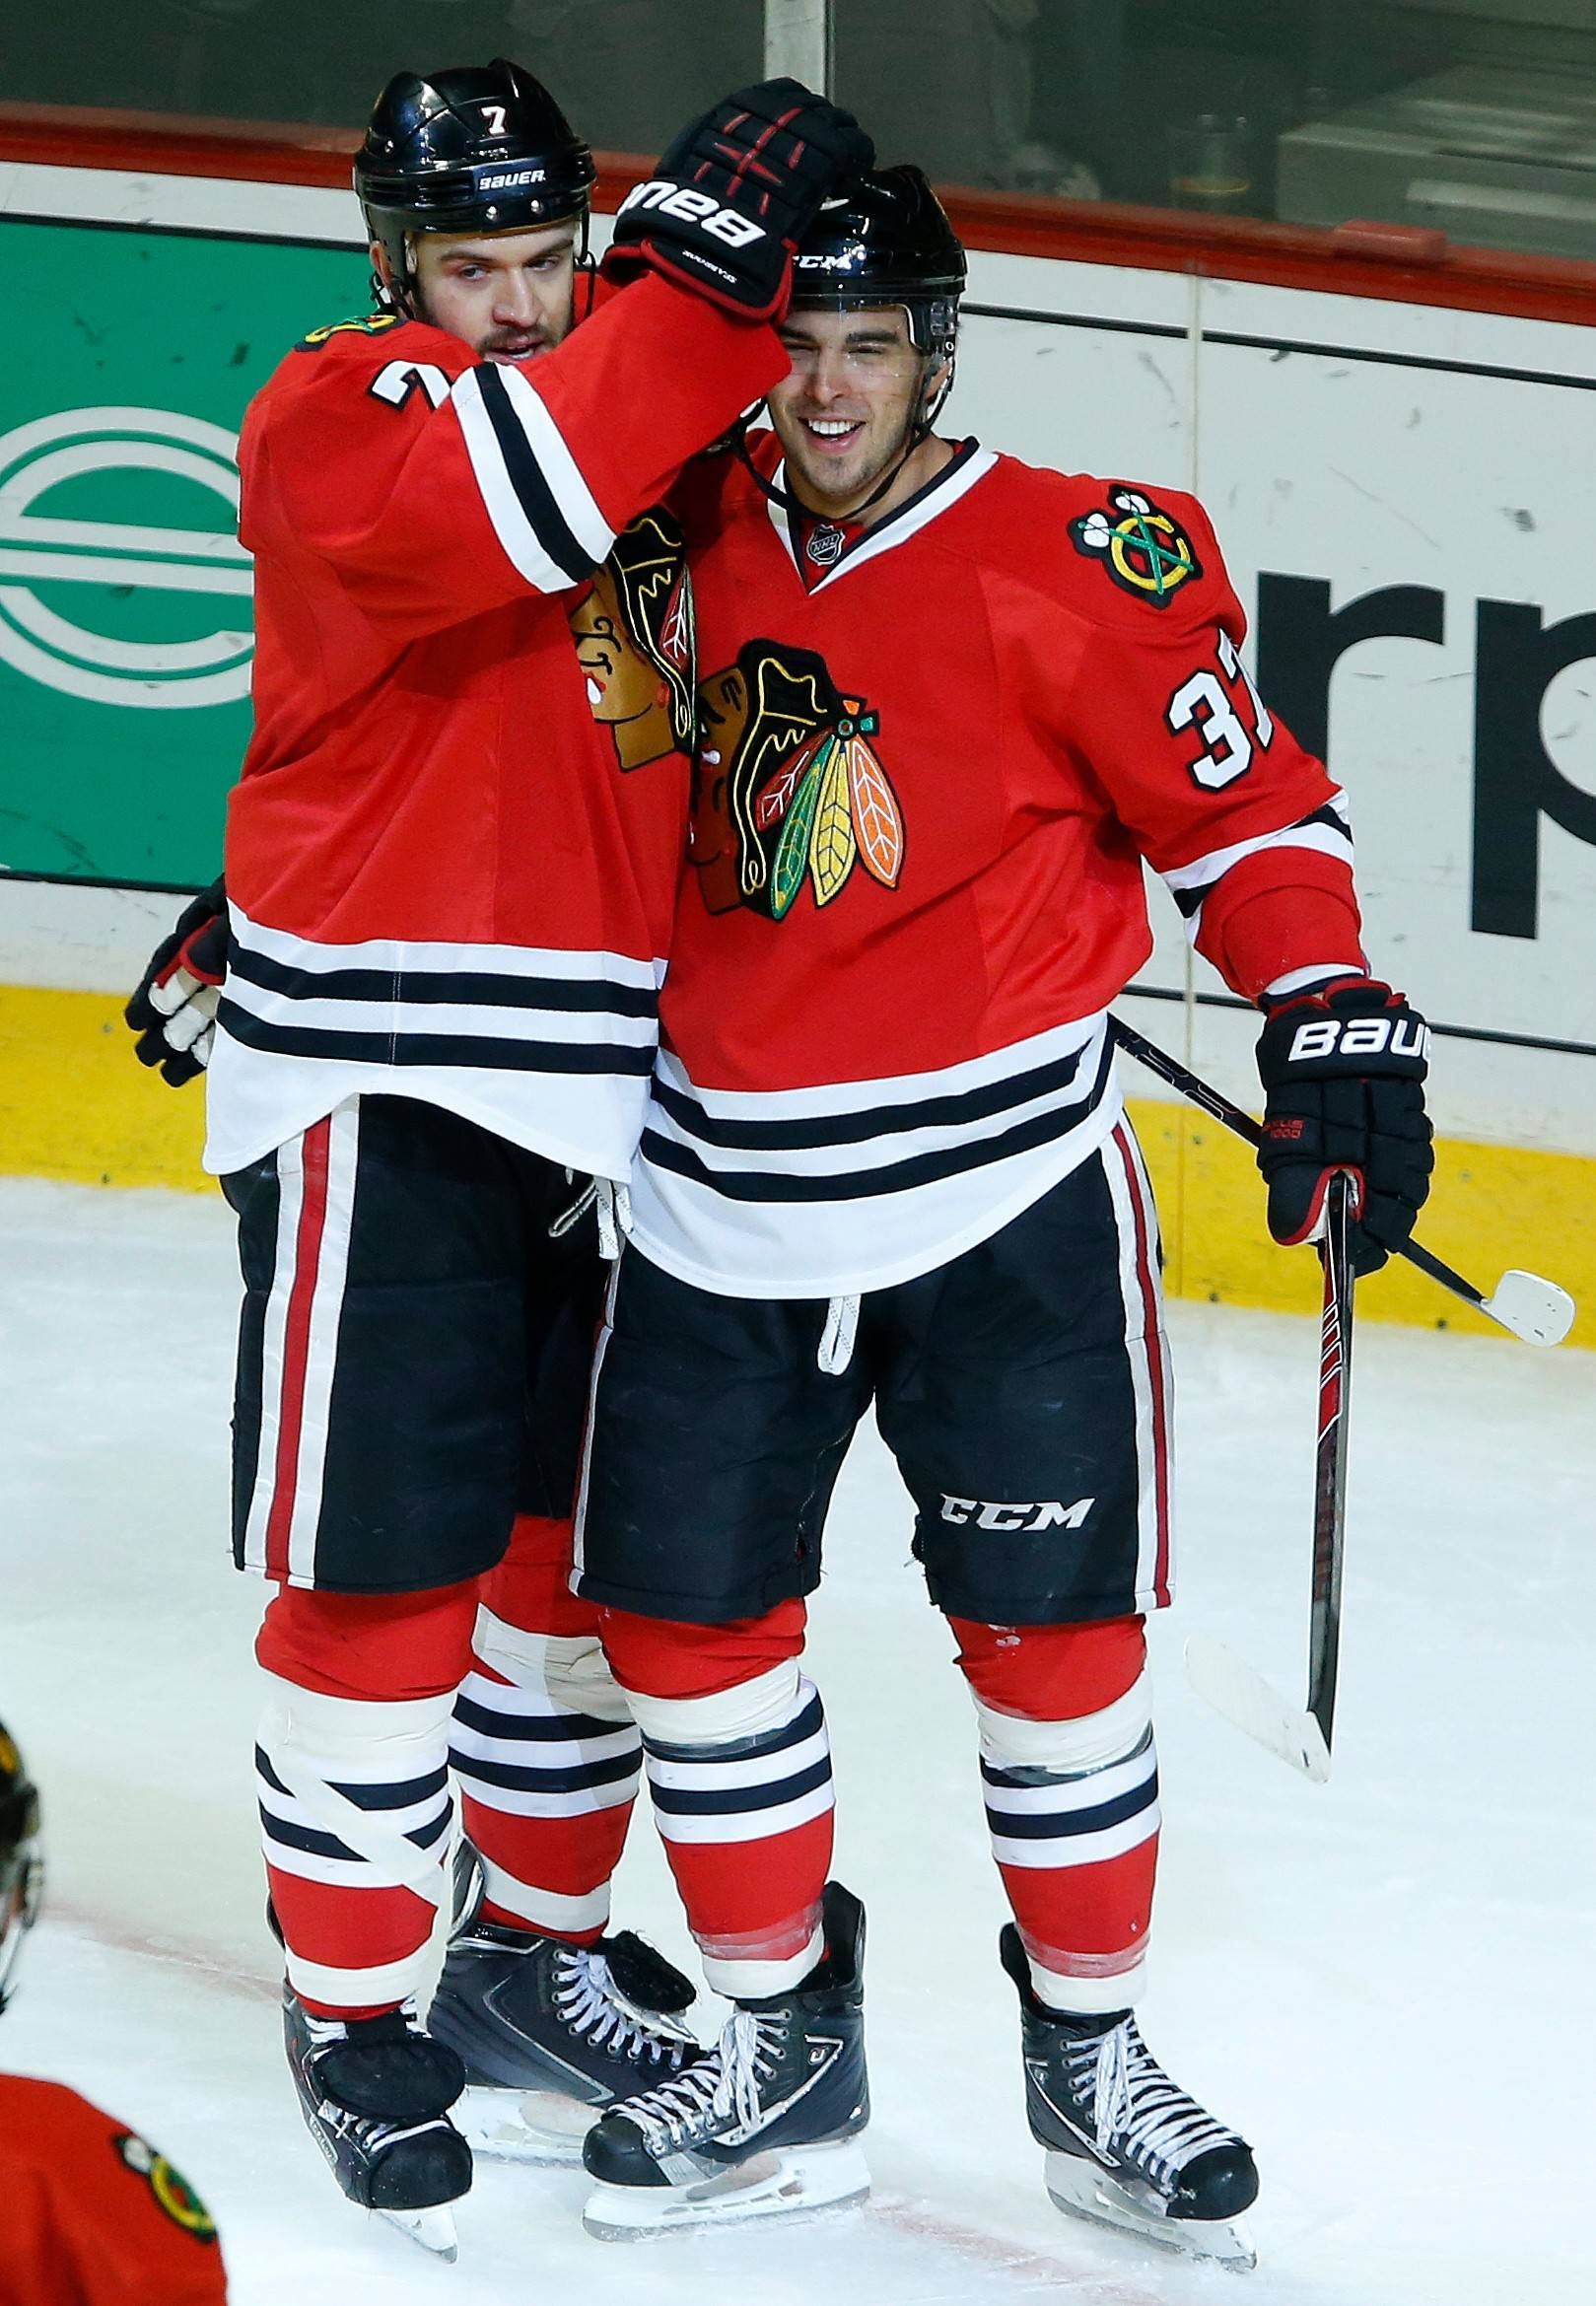 Chicago Blackhawks defenseman Brent Seabrook (7) and center Brandon Pirri (37) celebrate after Pirri scored a goal against the Toronto Maple Leafs during the second period of an Oct. 19 NHL hockey game on in Chicago.